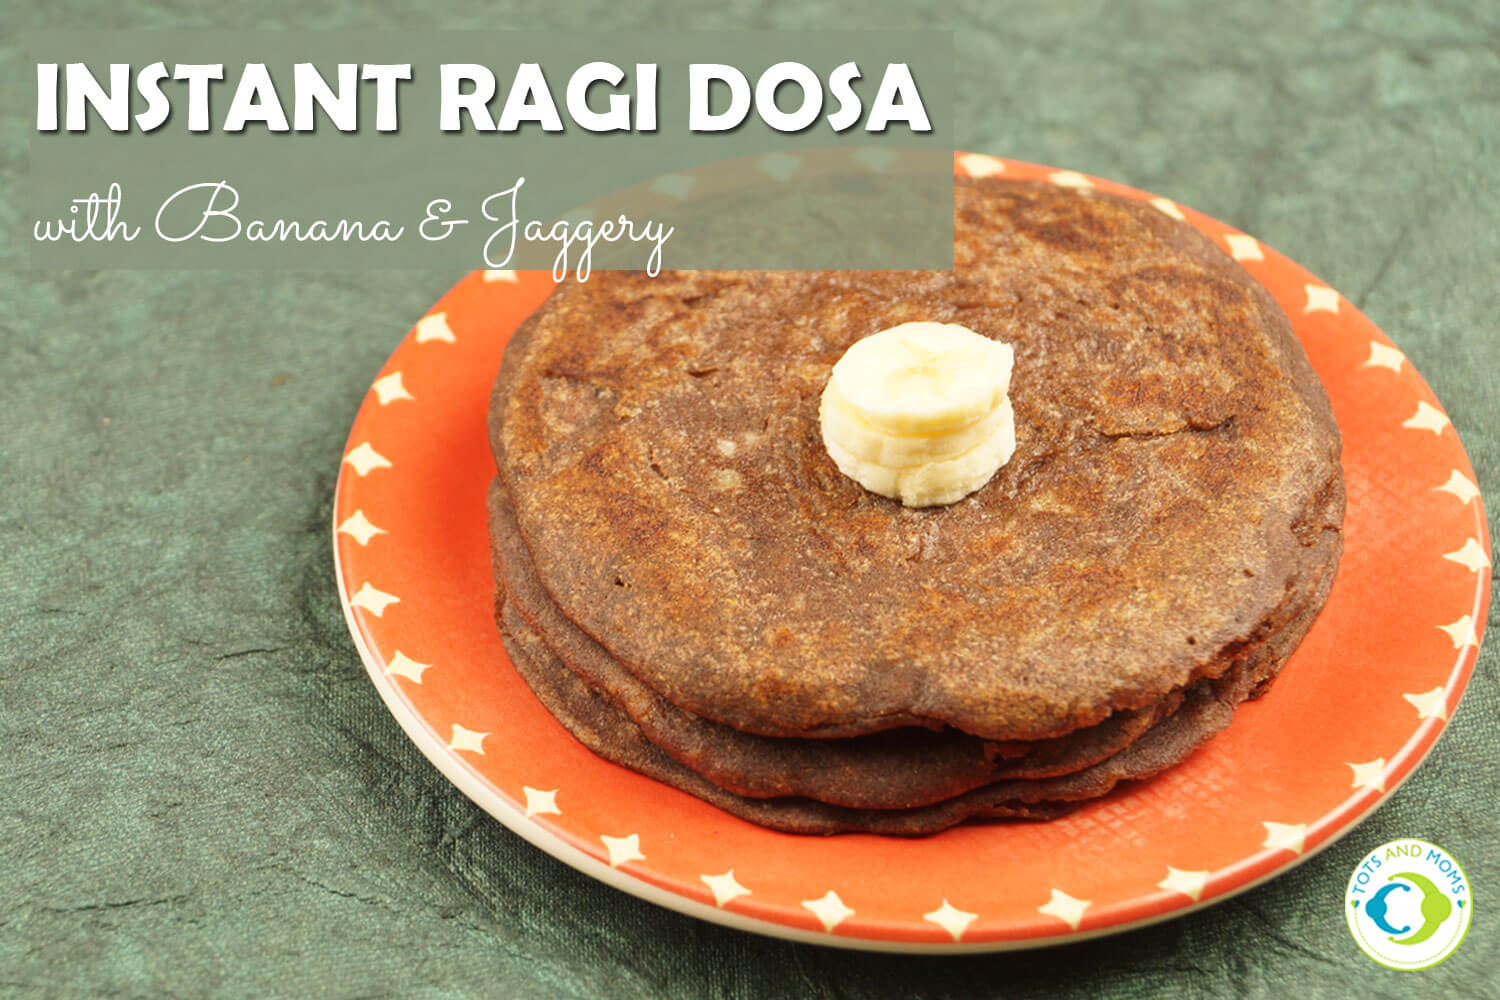 INSTANT SWEET RAGI DOSA WITH BANANA & JAGGERY for Toddlers, Kids & Family